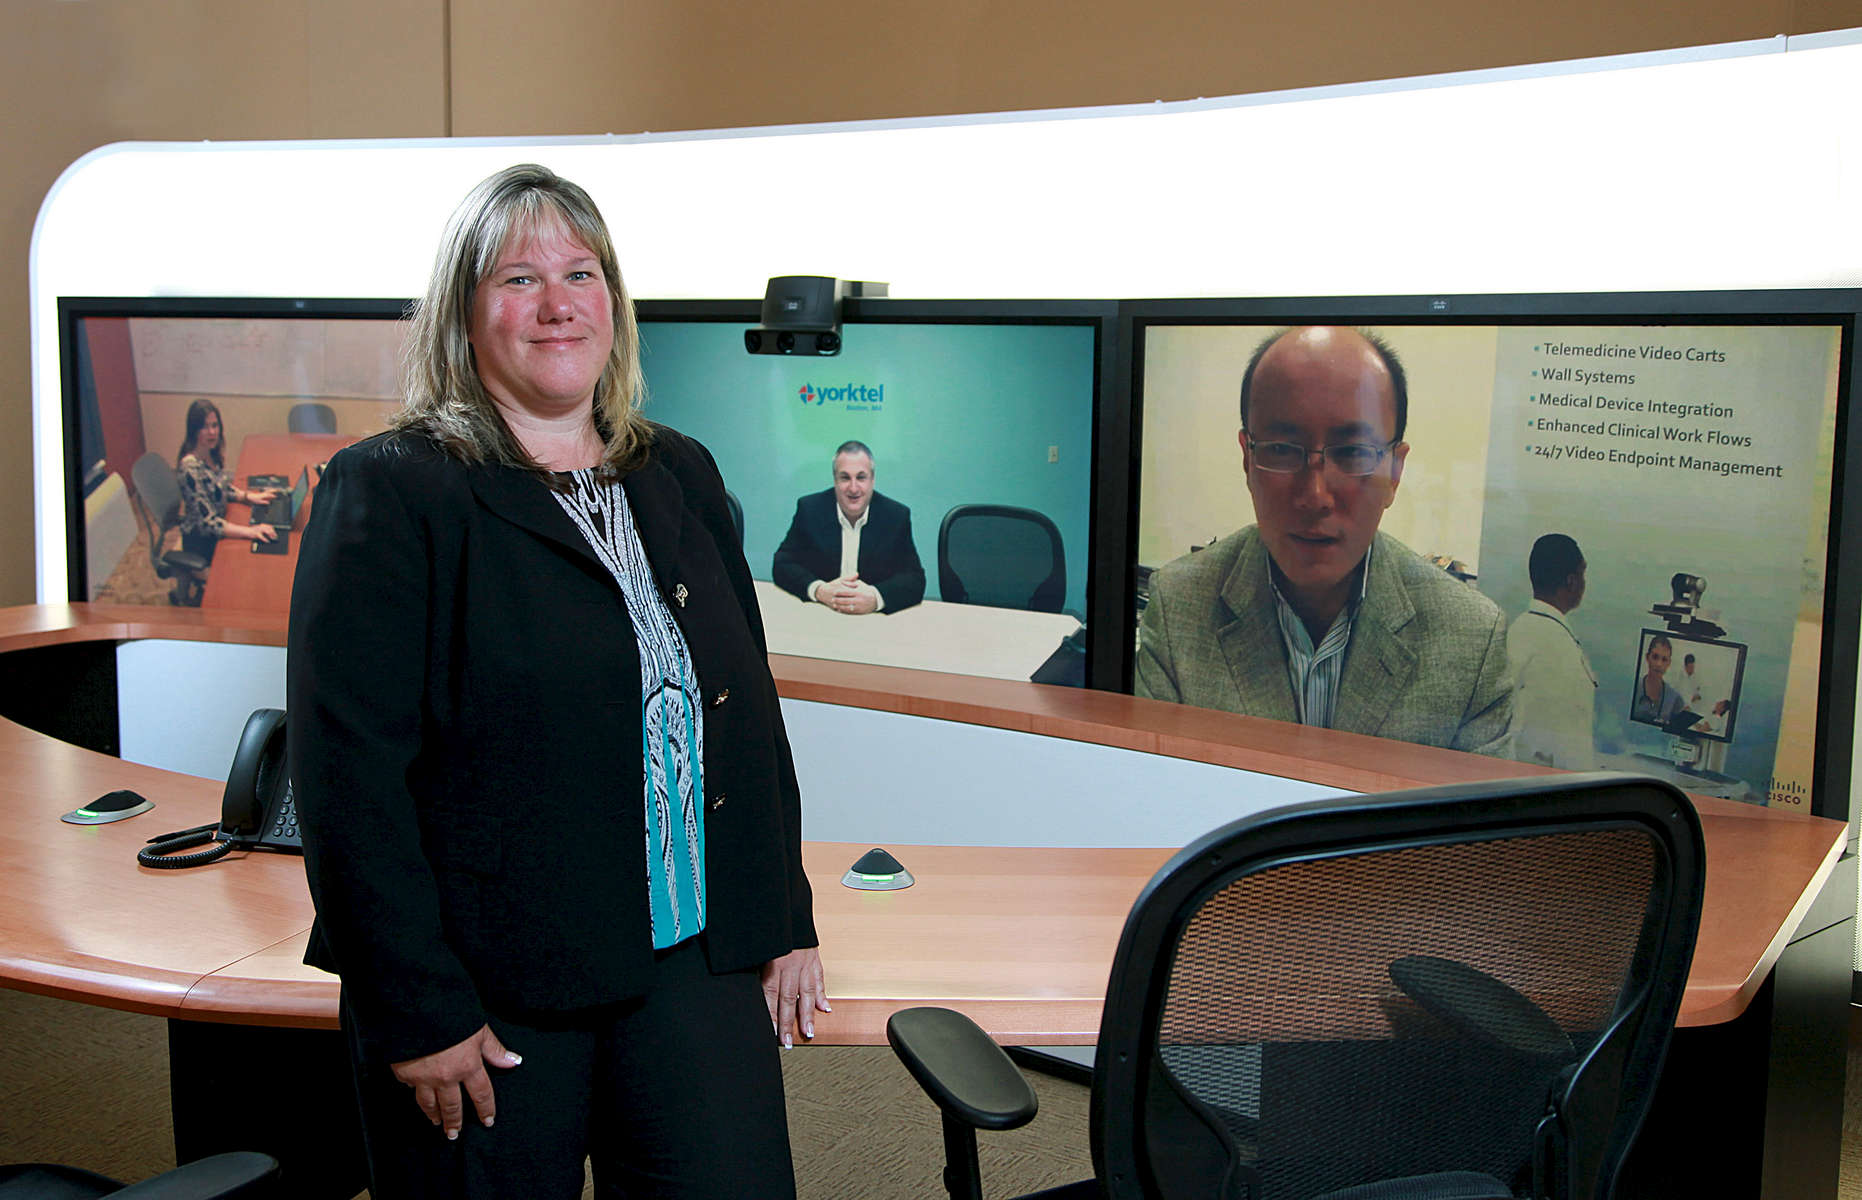 Judi Pulig, CFO of Yorktel, an Eatontown, New Jersey based Video Conferencing Company, in one of their Corporate Video Conferencing Rooms.  On the screens (L to R) are Amyanne Barone, Account Manager; Eric Richman, VP Corporate Services in Boston, MA and Bin Guan, Chief Technology Officer.  CREDIT: Bill Denver for the Wall Street JournalCFOSKILLS